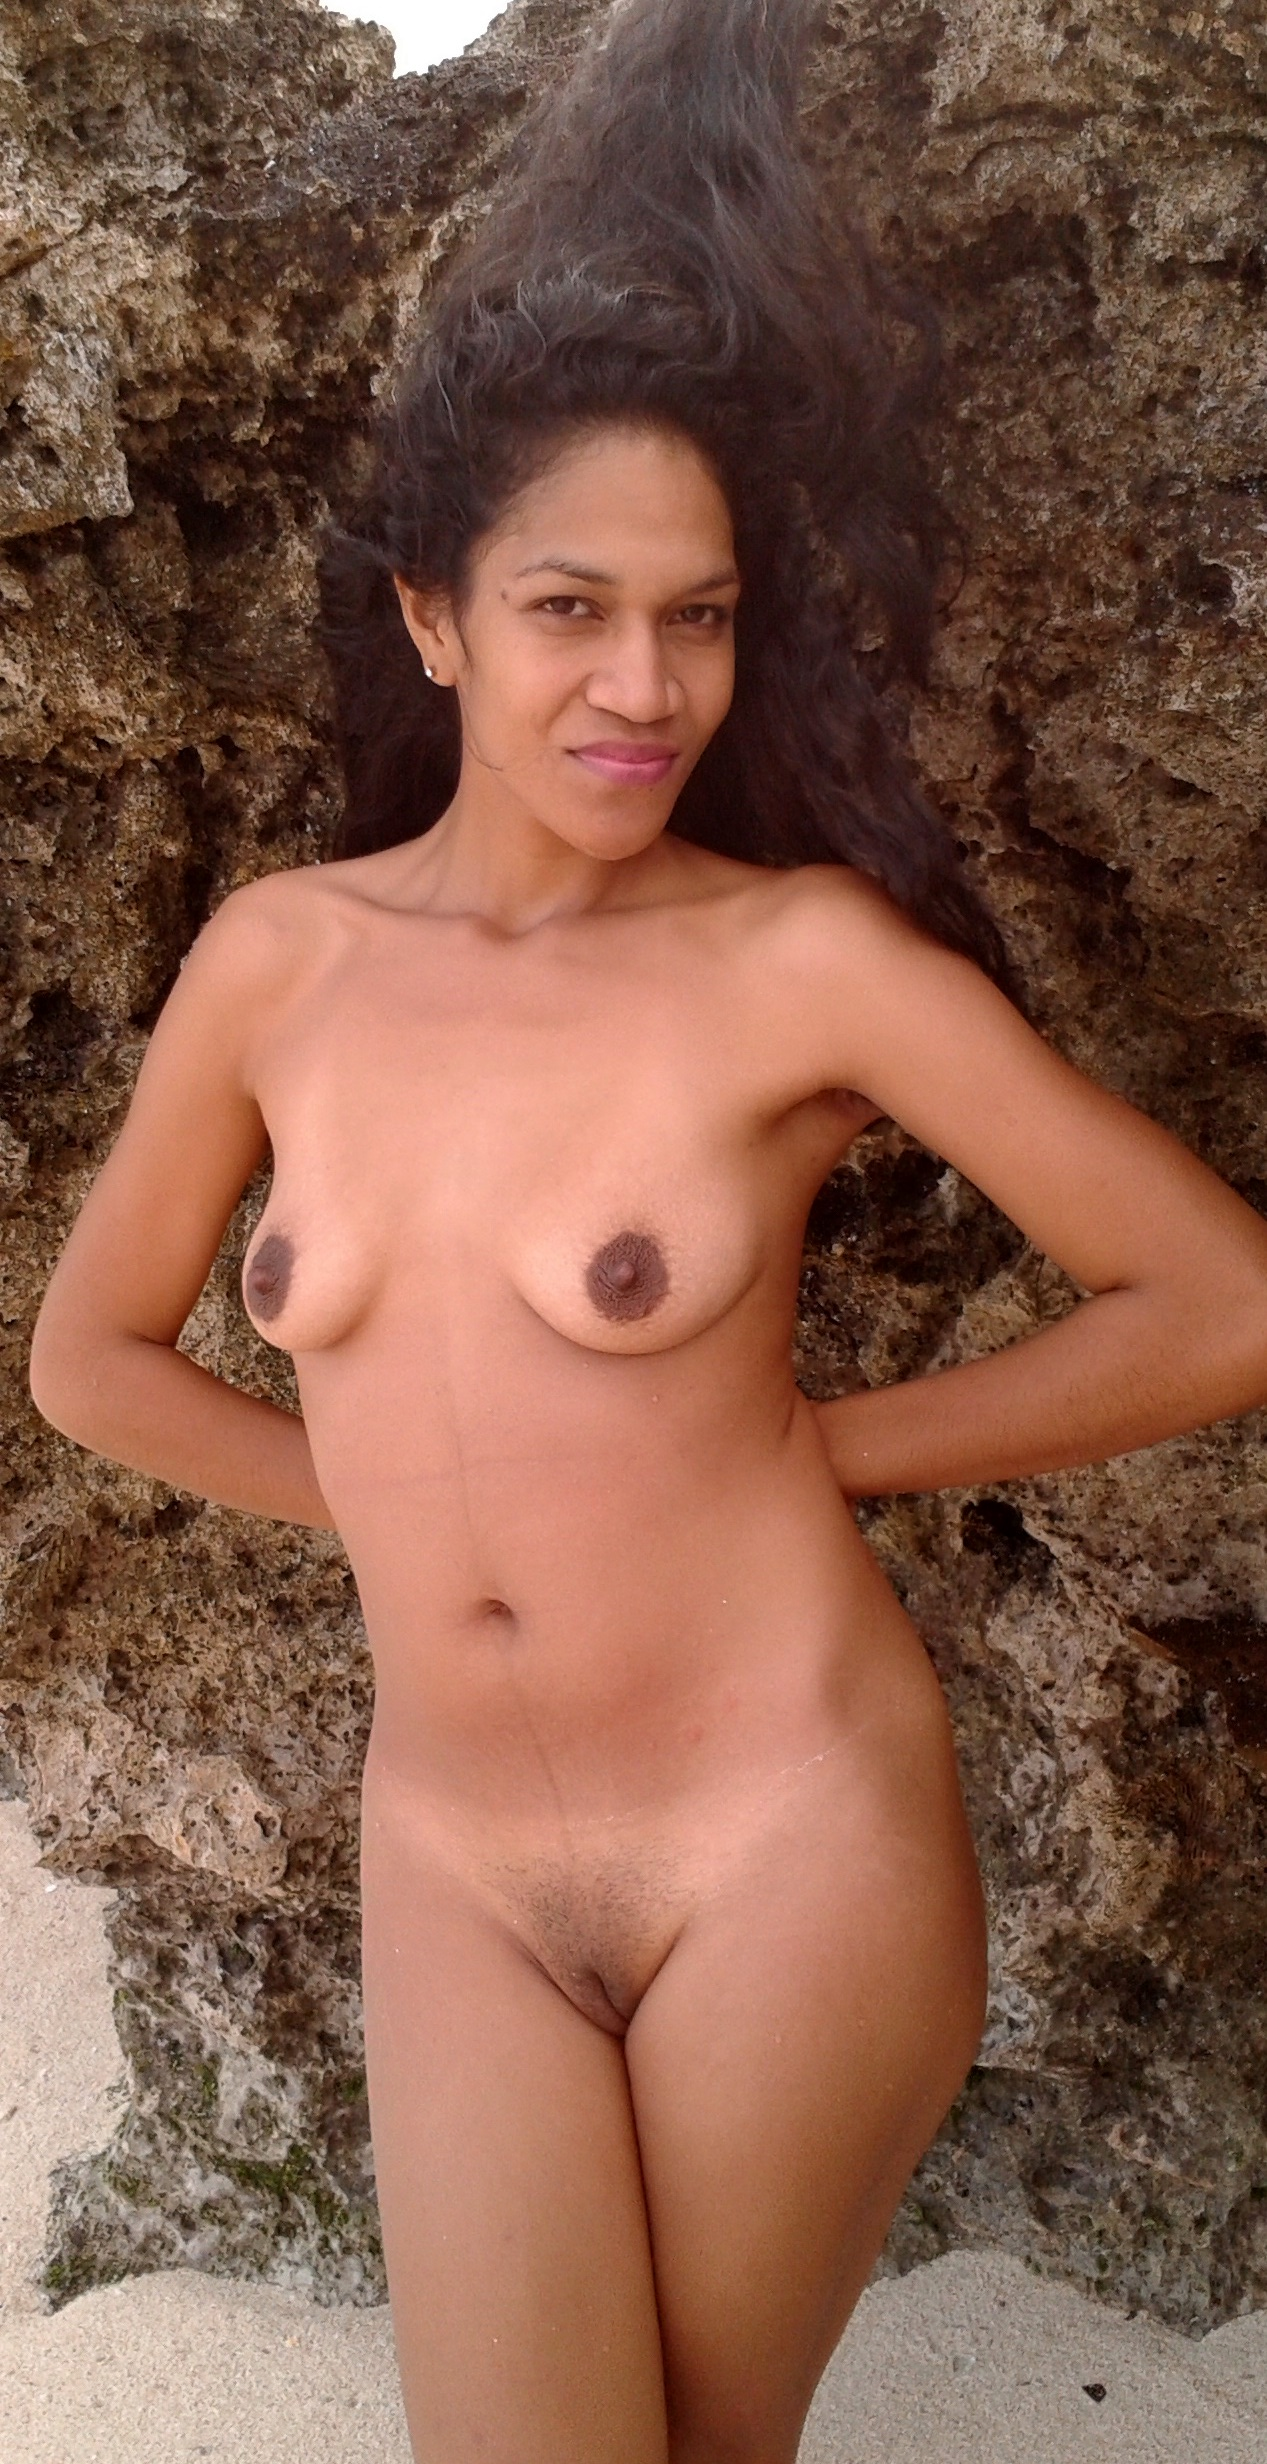 Naked island girls sex idea